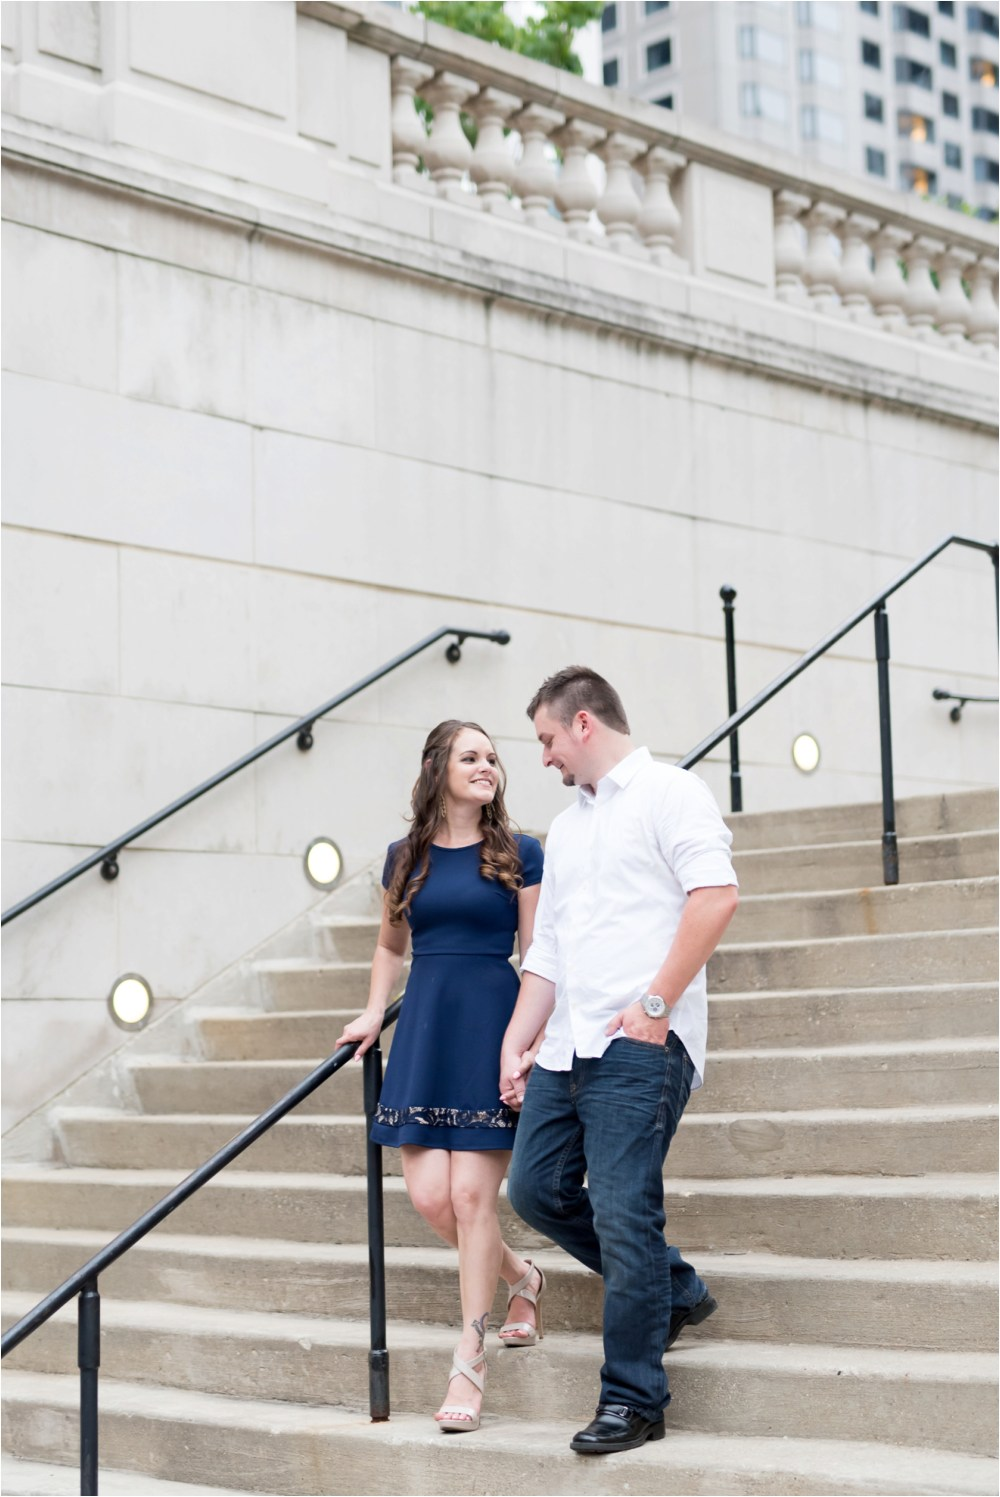 chicago-ilinois-michigna-ave-city-downtown-engagement-photo-44.jpg